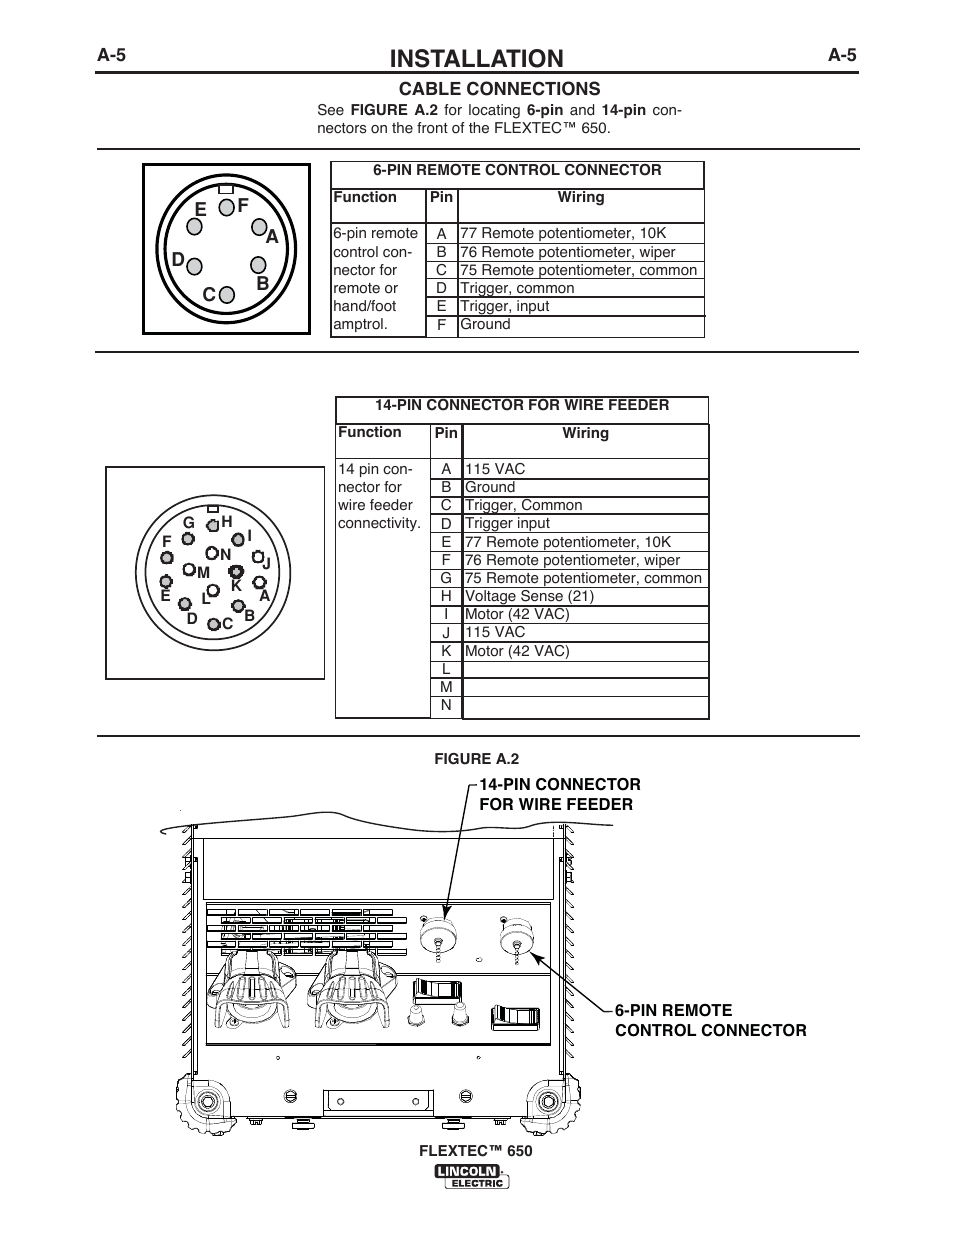 Wiring Diagram Remote Potentiometer Electrical Diagrams For A 10k Installation Lincoln Electric Im10115 Flextec 650 User Manual Schematic Symbol